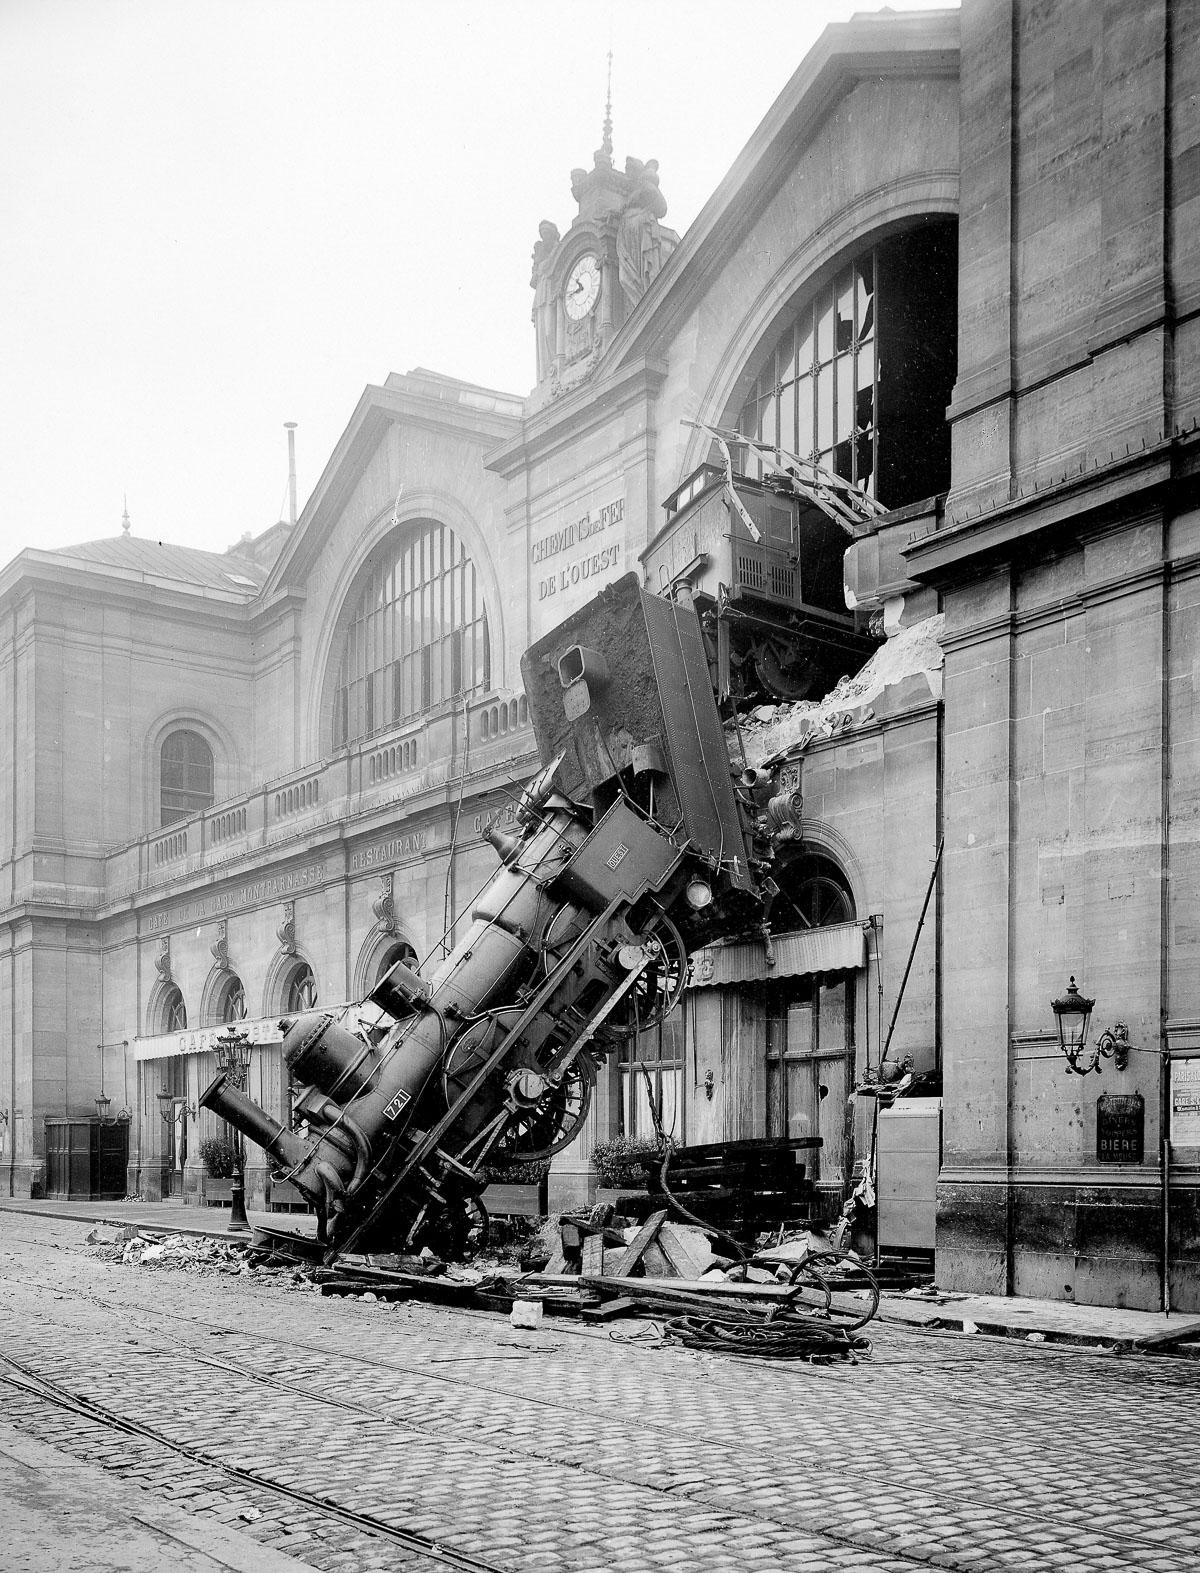 RT @mashable: Even trains from 1895 were not designed to be vertical: http://t.co/LRy5r3Yhl8 ht @theretronaut http://t.co/6q2RDalZBj